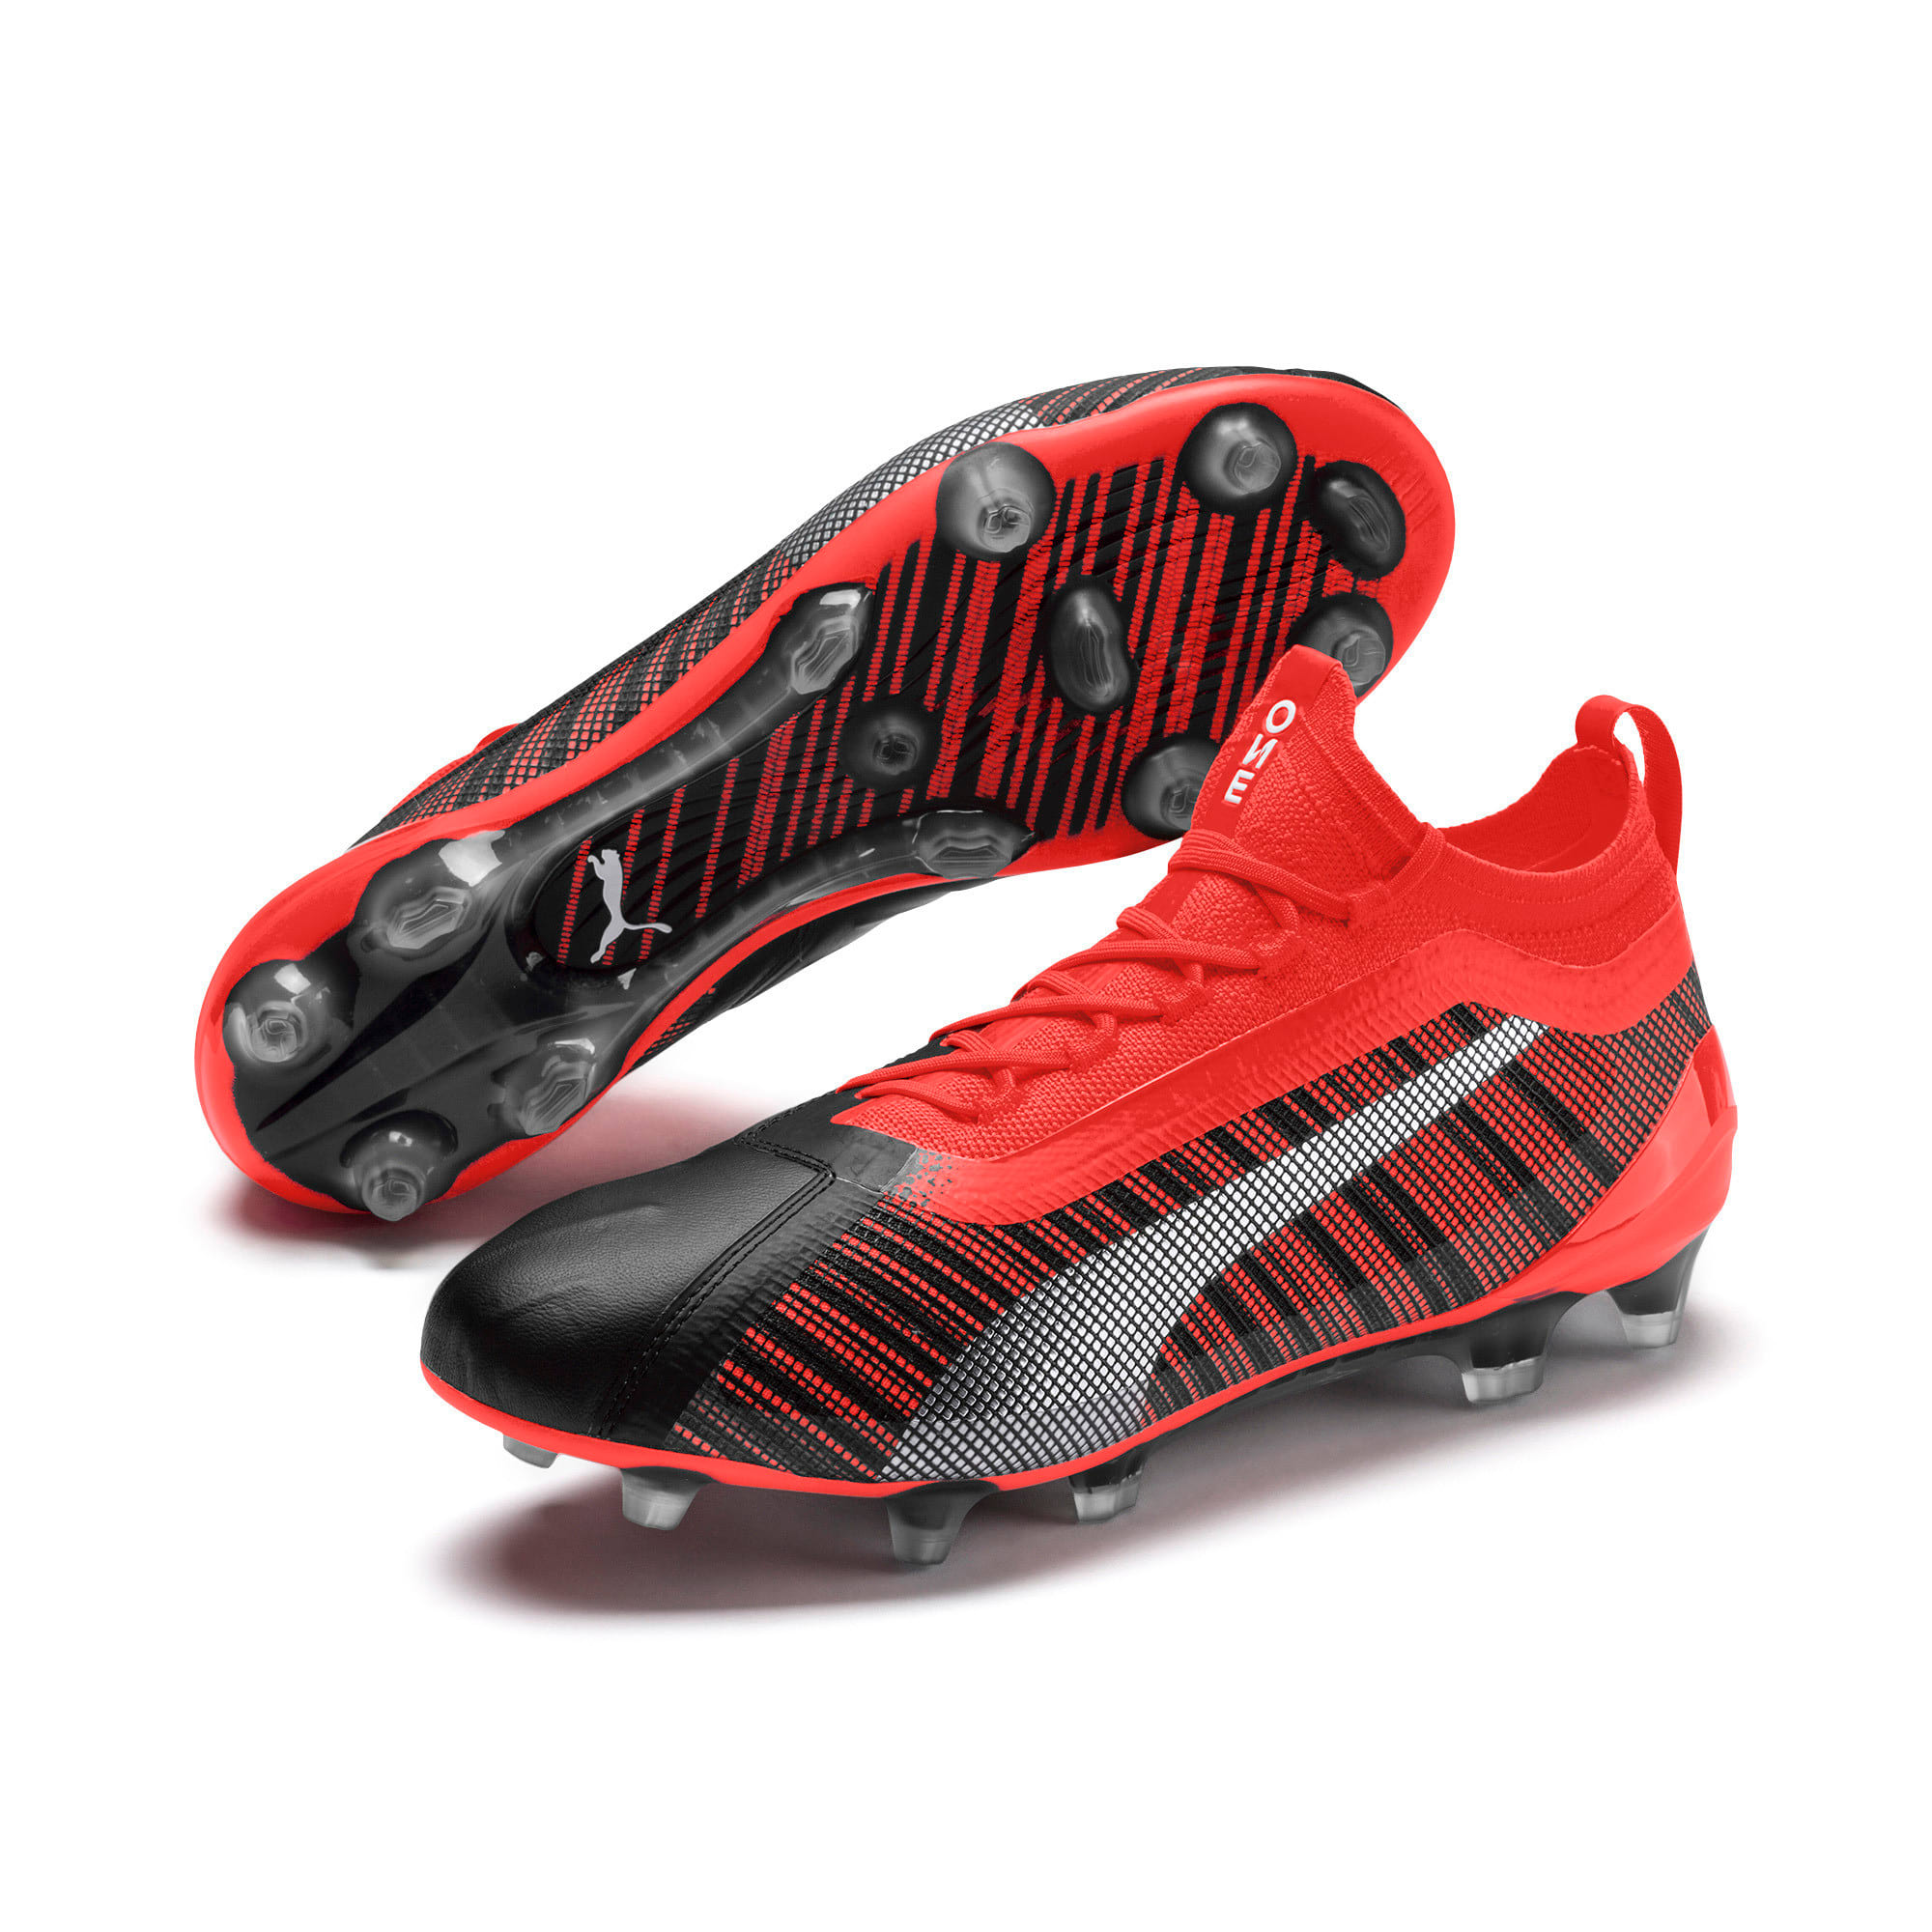 Thumbnail 4 of PUMA ONE 5.1 evoKNIT FG/AG Men's Football Boots, Black-Nrgy Red-Aged Silver, medium-IND